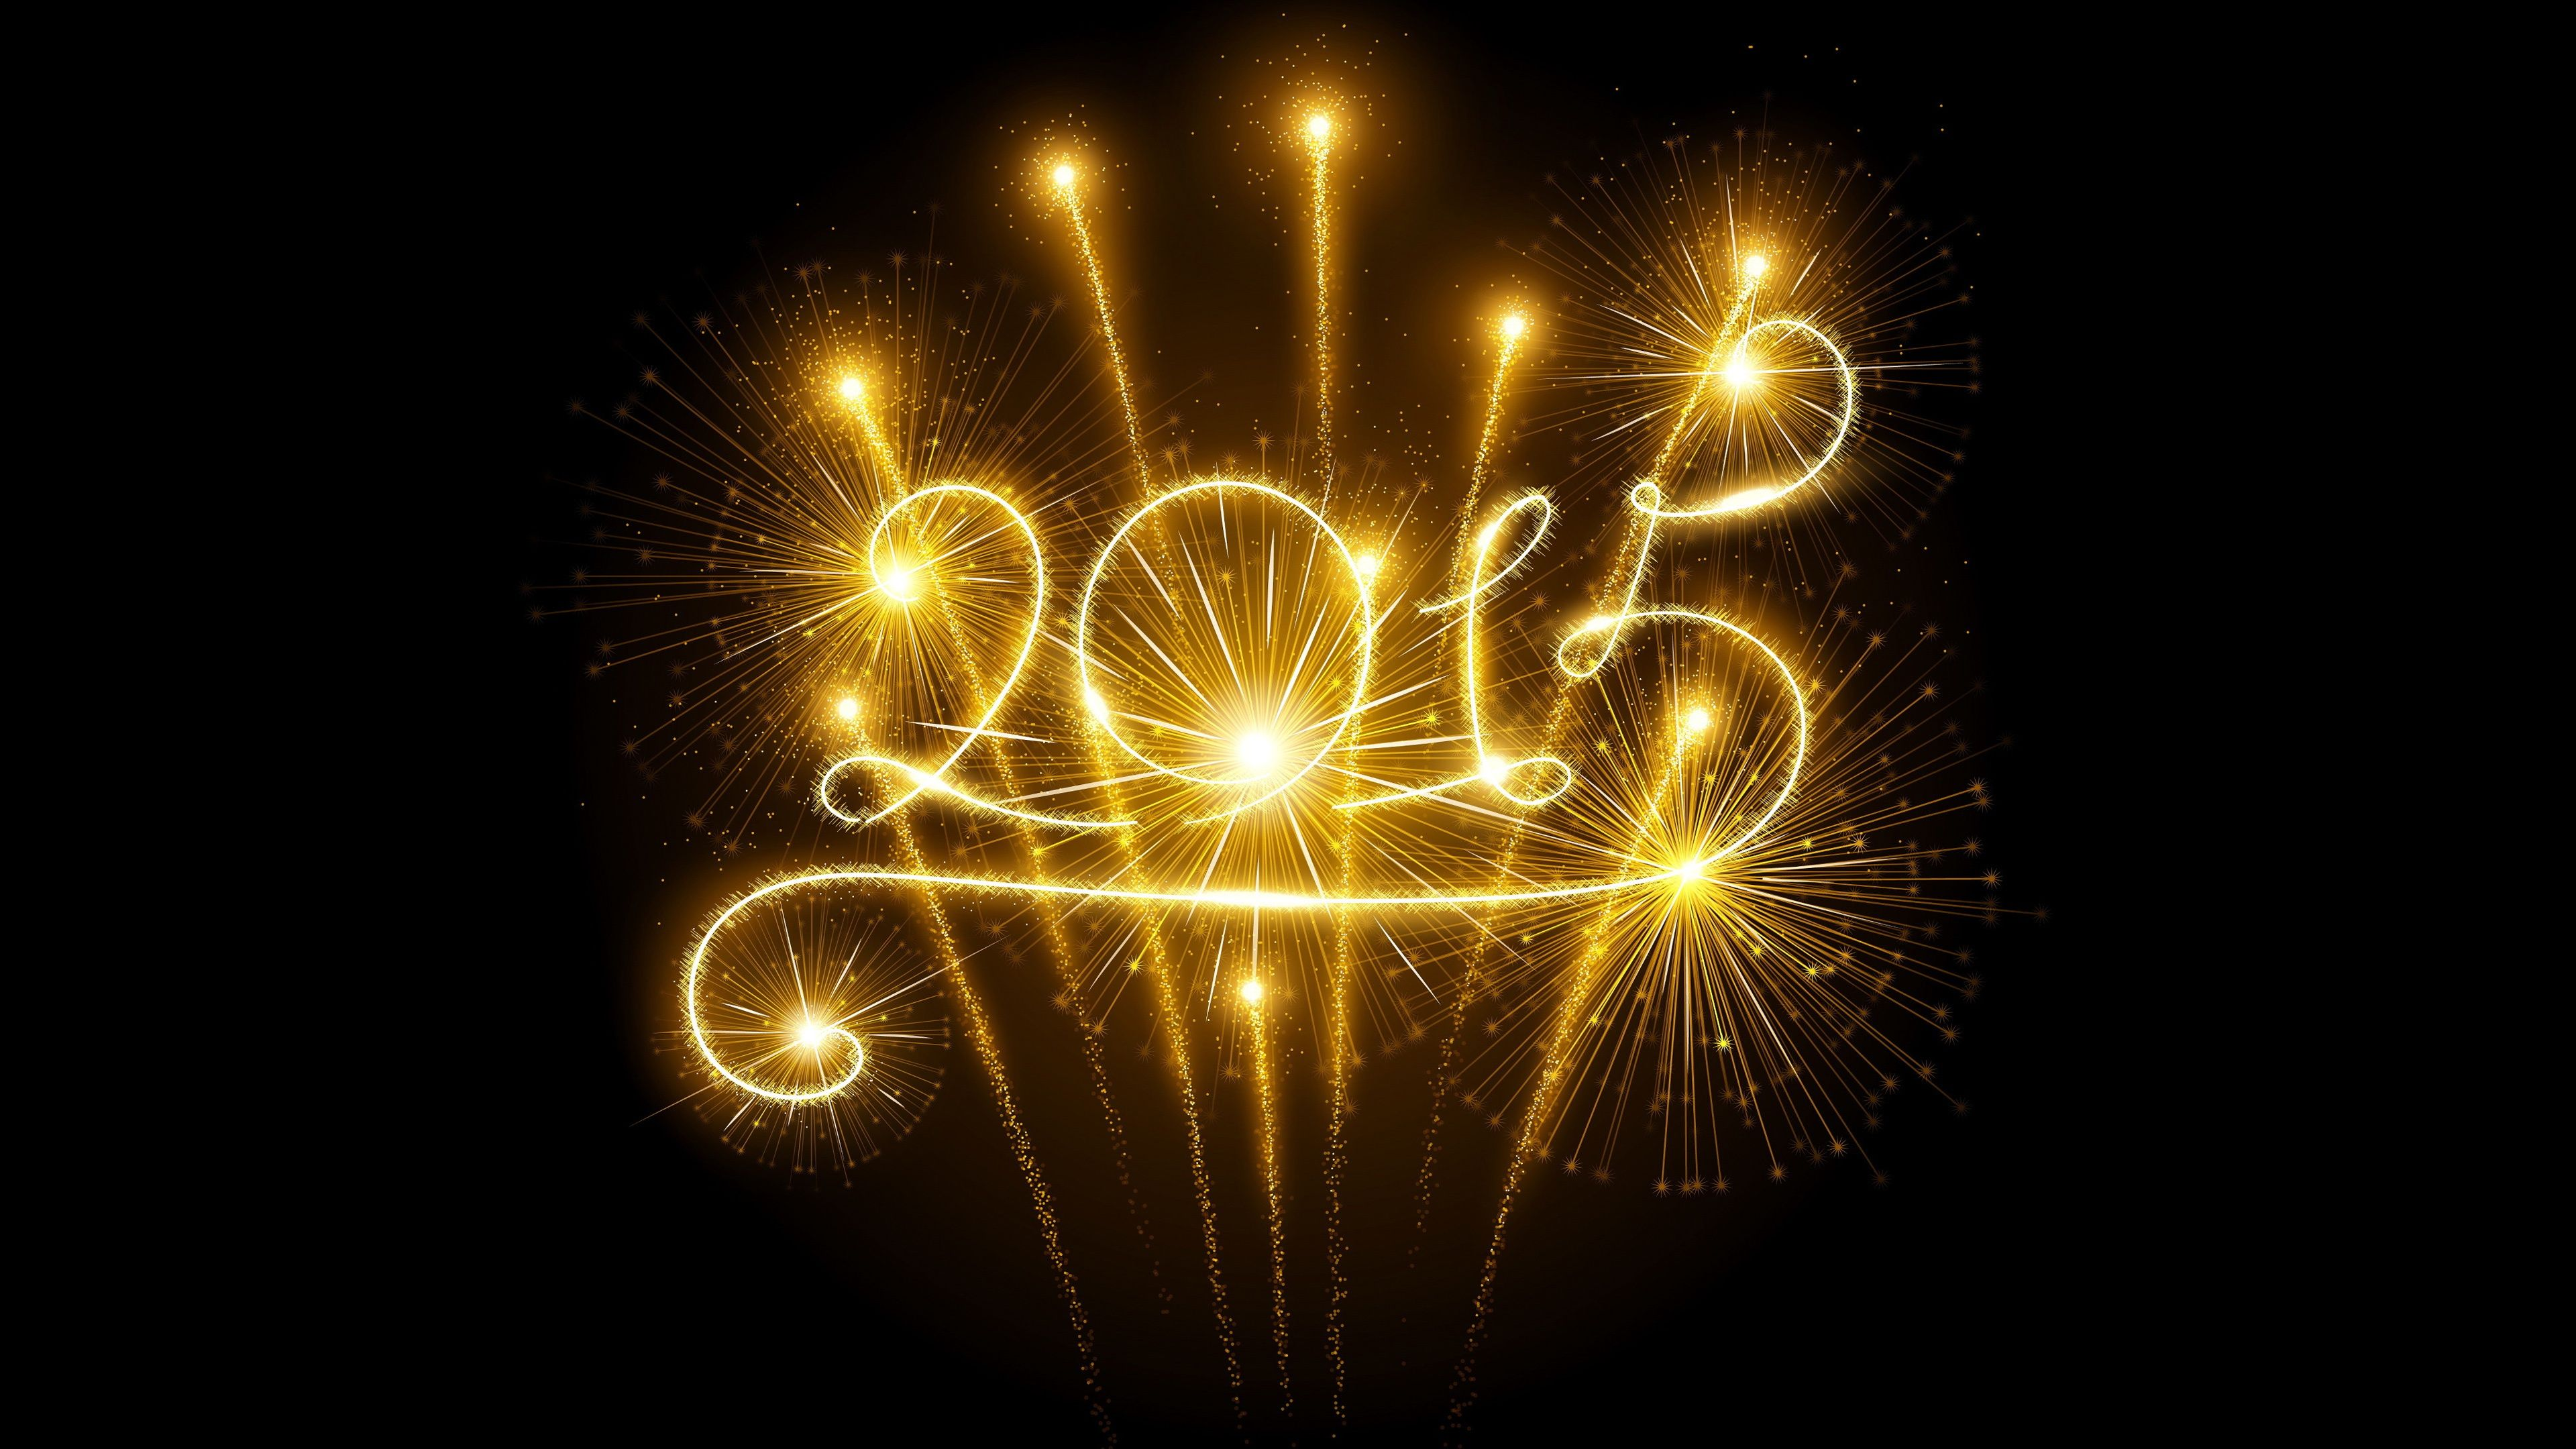 find this pin and more on download wallpaper by wallpaper4676 happy new year 2015 fireworks hd desktop